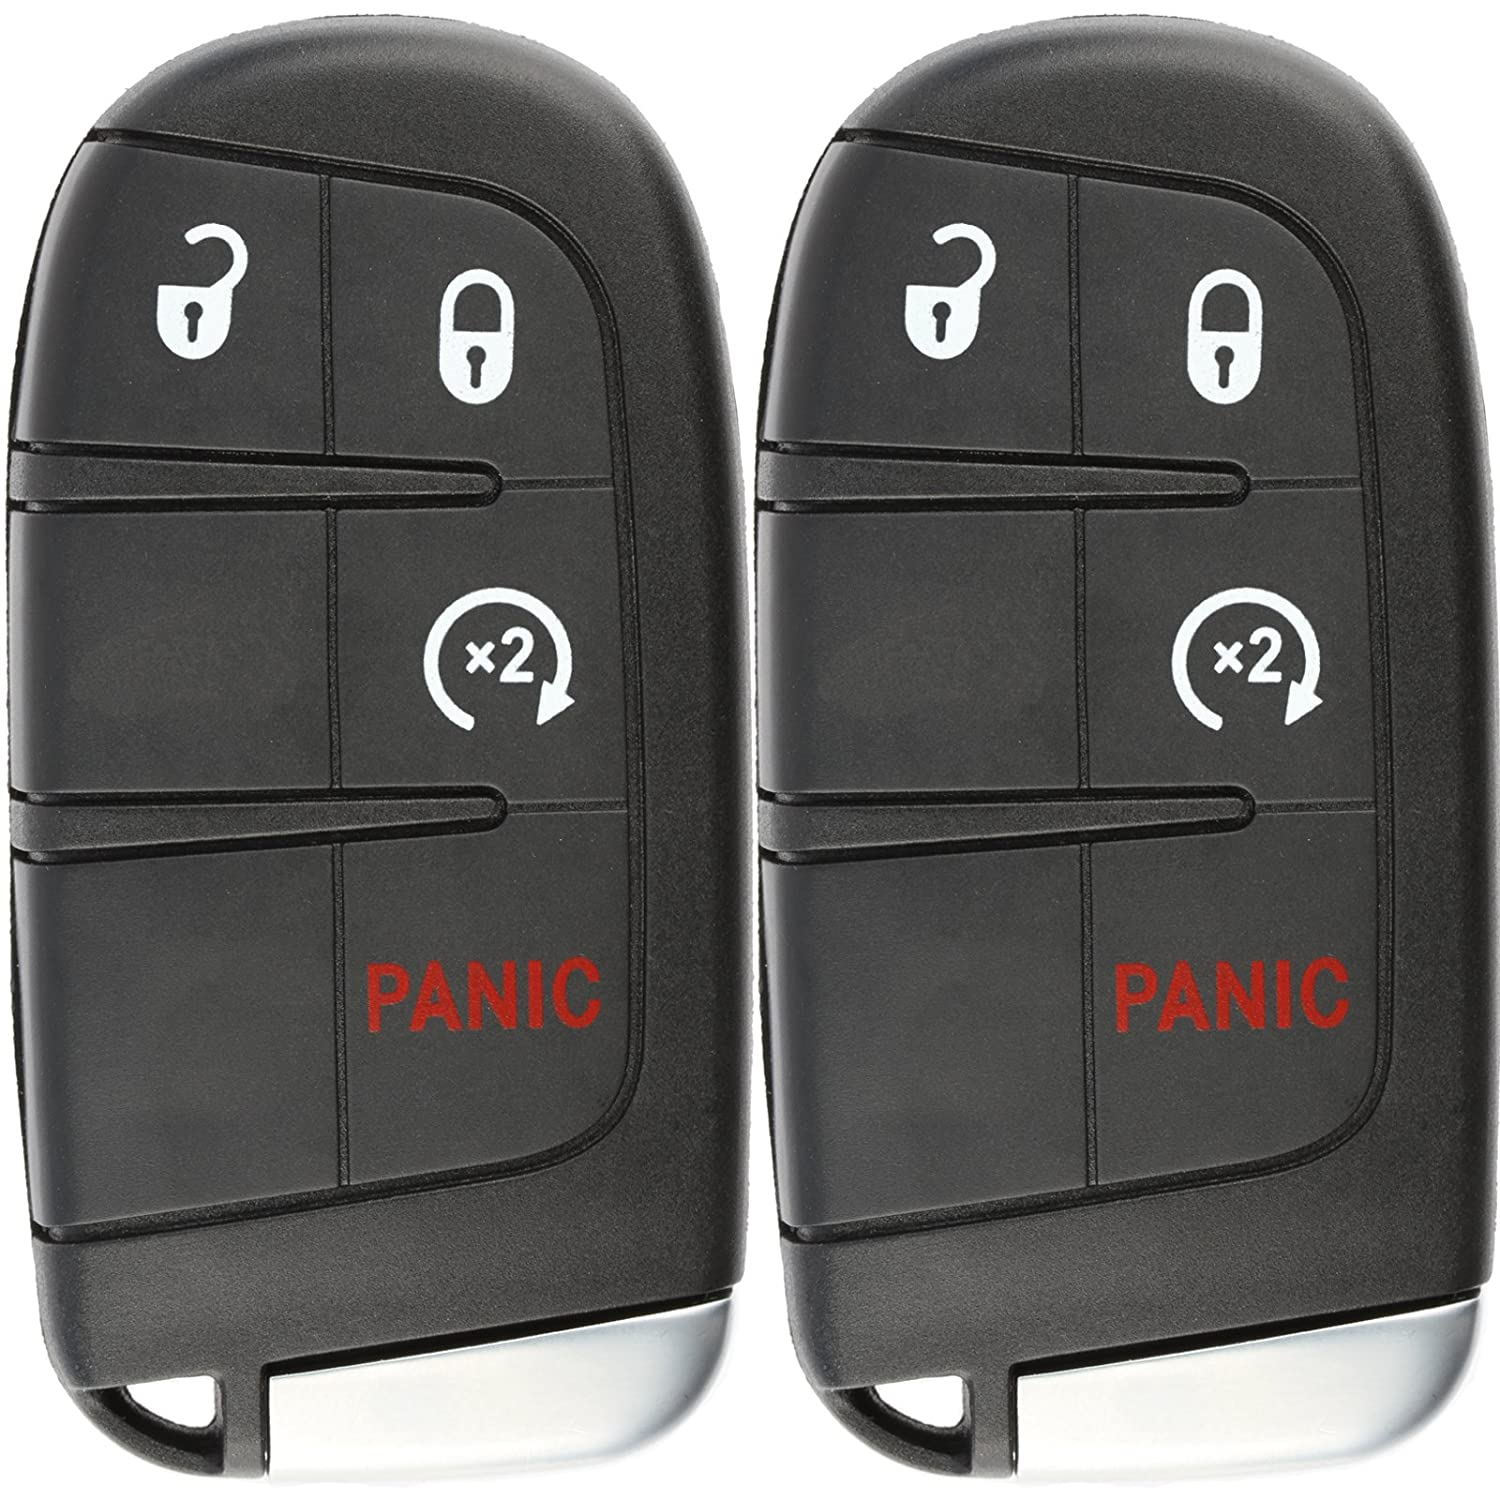 Aupoko Remote Key Case Shell Cover 3 Button For Honda Accord 1997 Element 03-11 4347654400